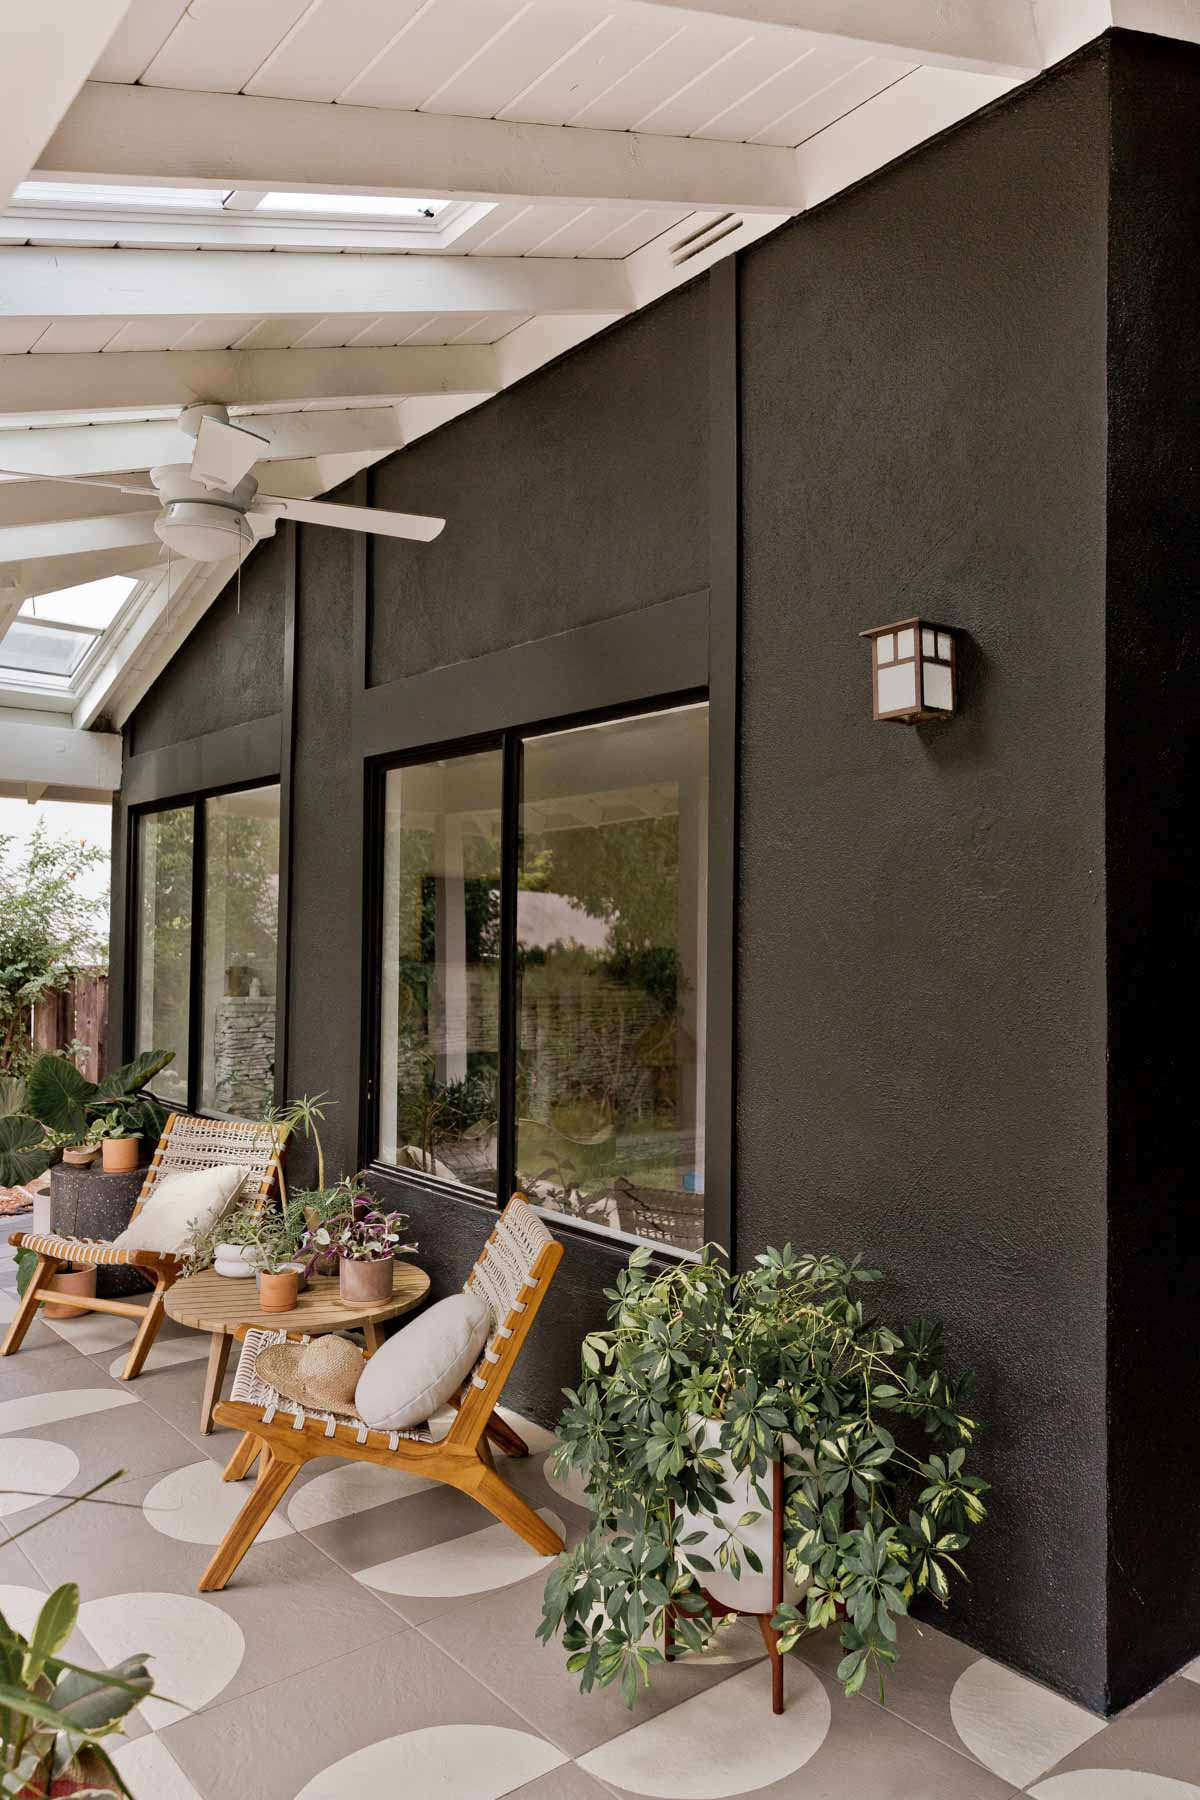 Modern front porch with black exterior and painted pattern tile flooring.